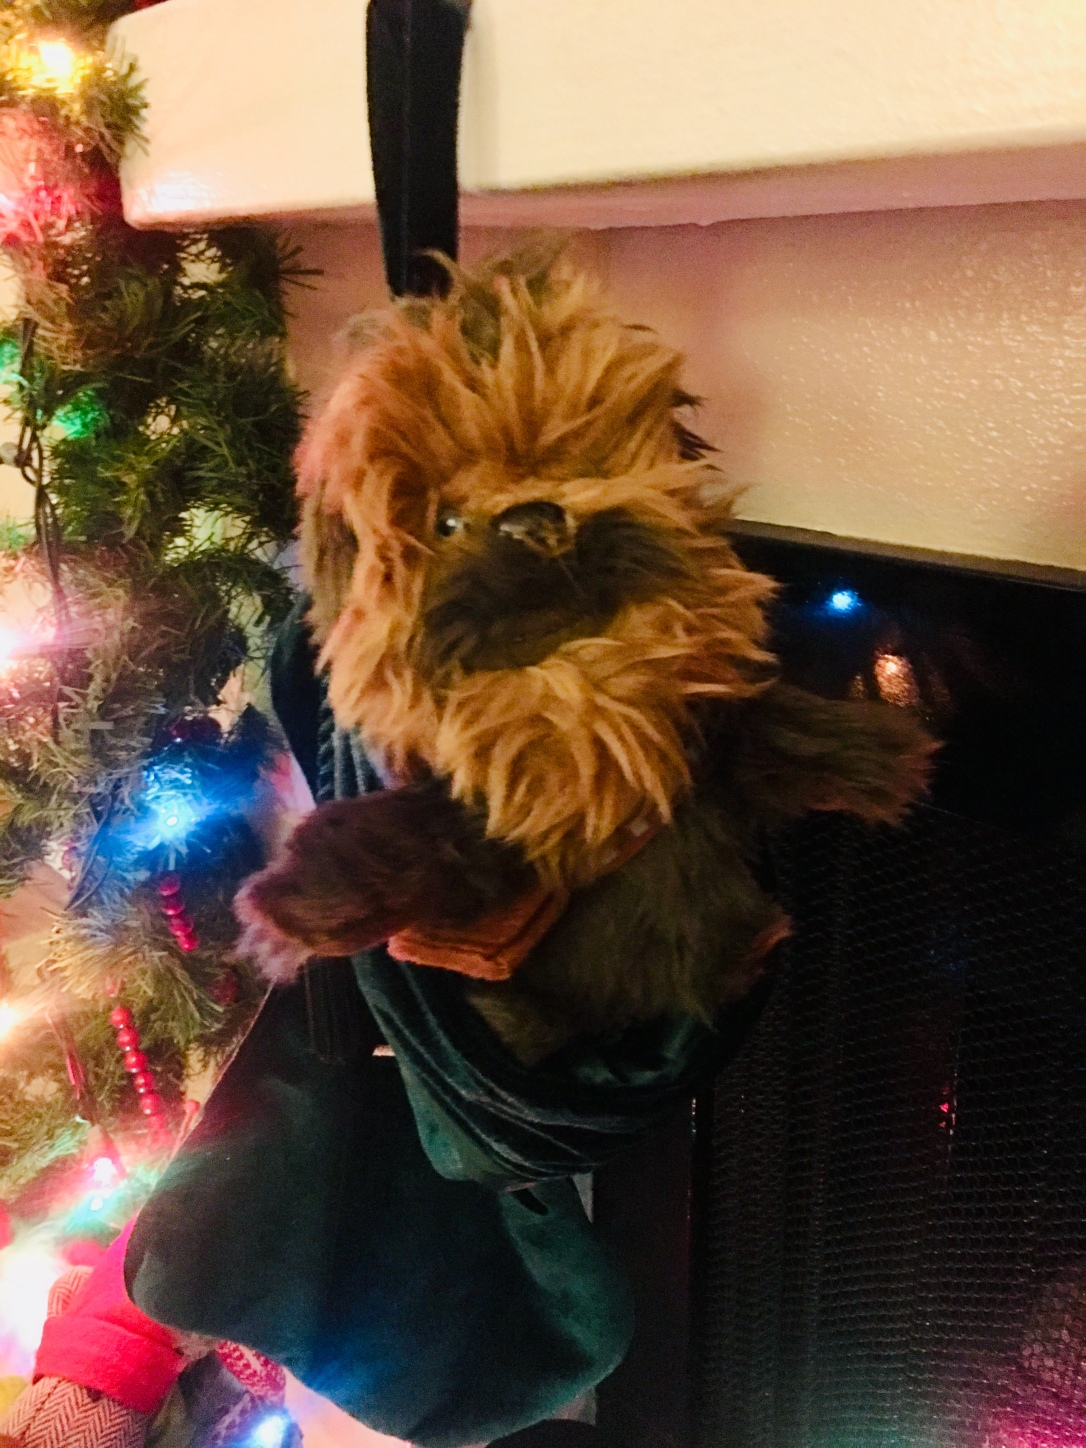 Chewbacca Plush Toy